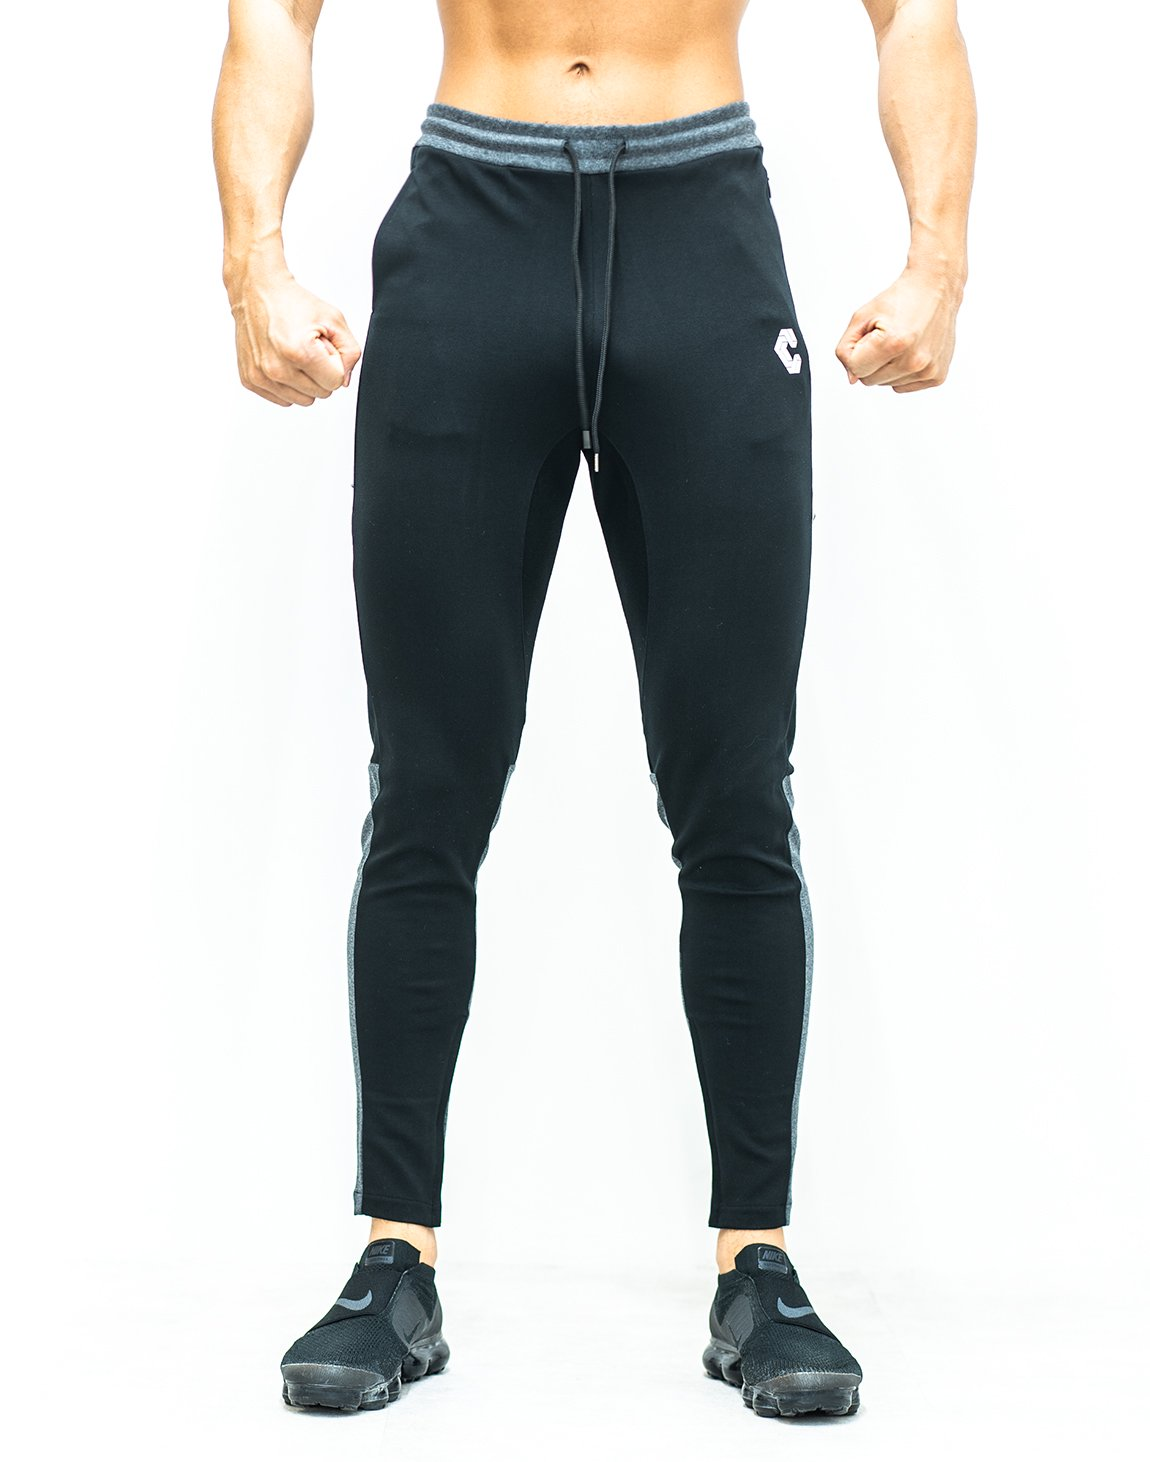 <img class='new_mark_img1' src='https://img.shop-pro.jp/img/new/icons1.gif' style='border:none;display:inline;margin:0px;padding:0px;width:auto;' />CRONOS CALF LOGO Bi-COLOR PANTS 【BLACK×GRAY】